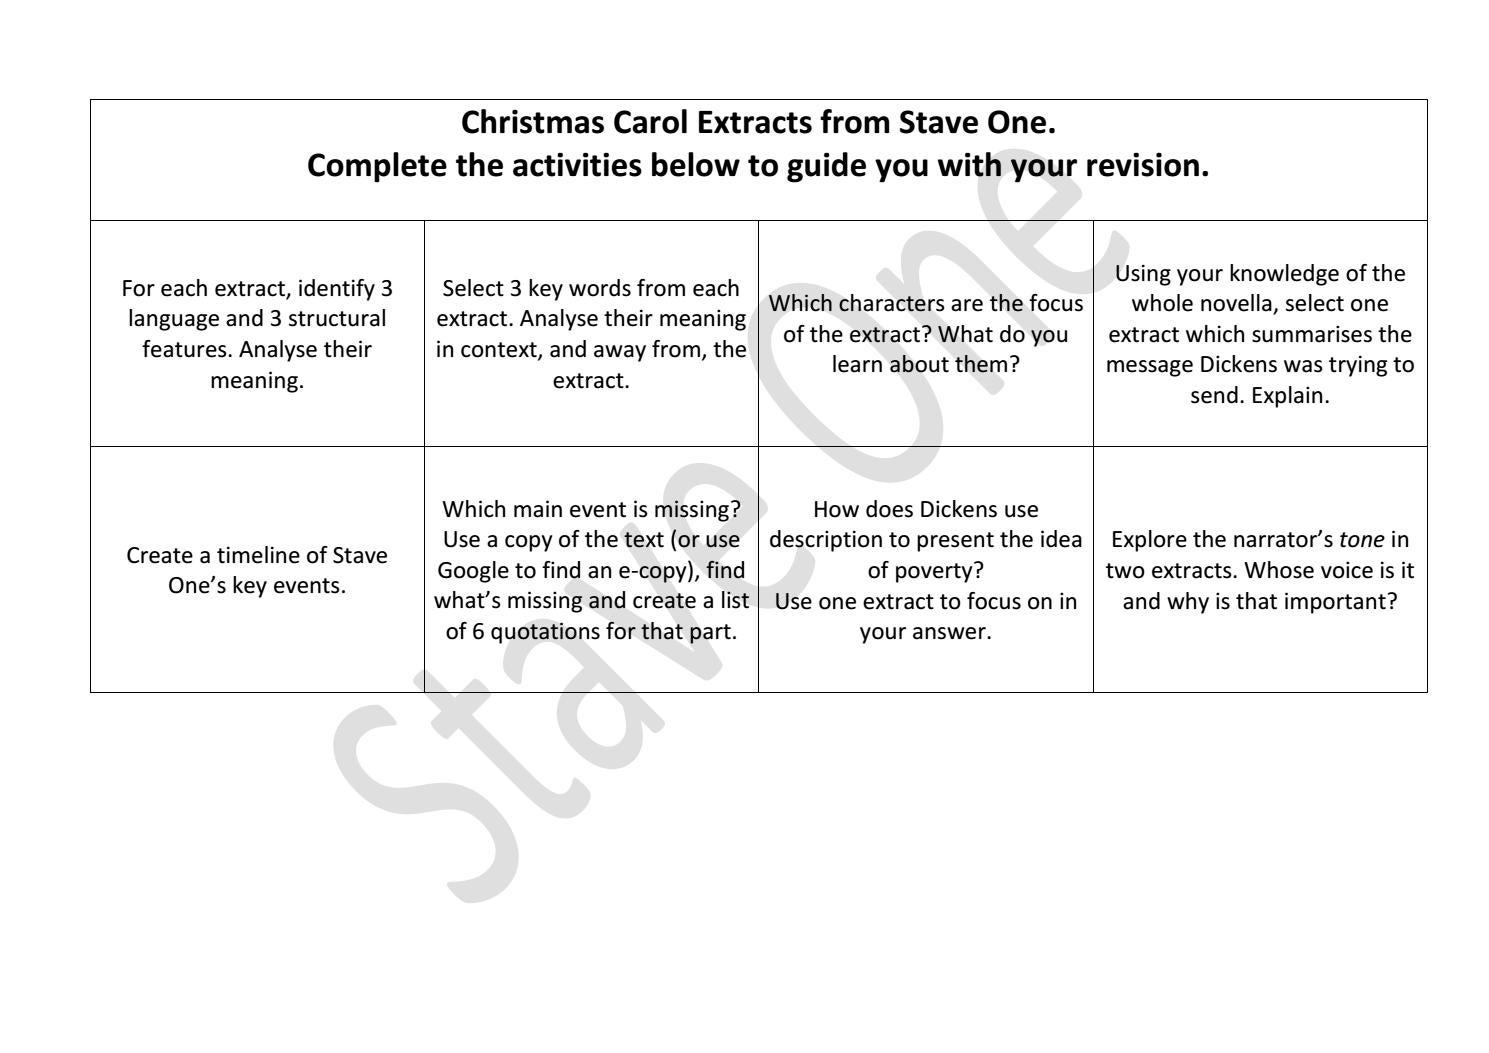 Christmas Carol Meaning.Christmas Carol Extracts From Stave One By Ullswater Community